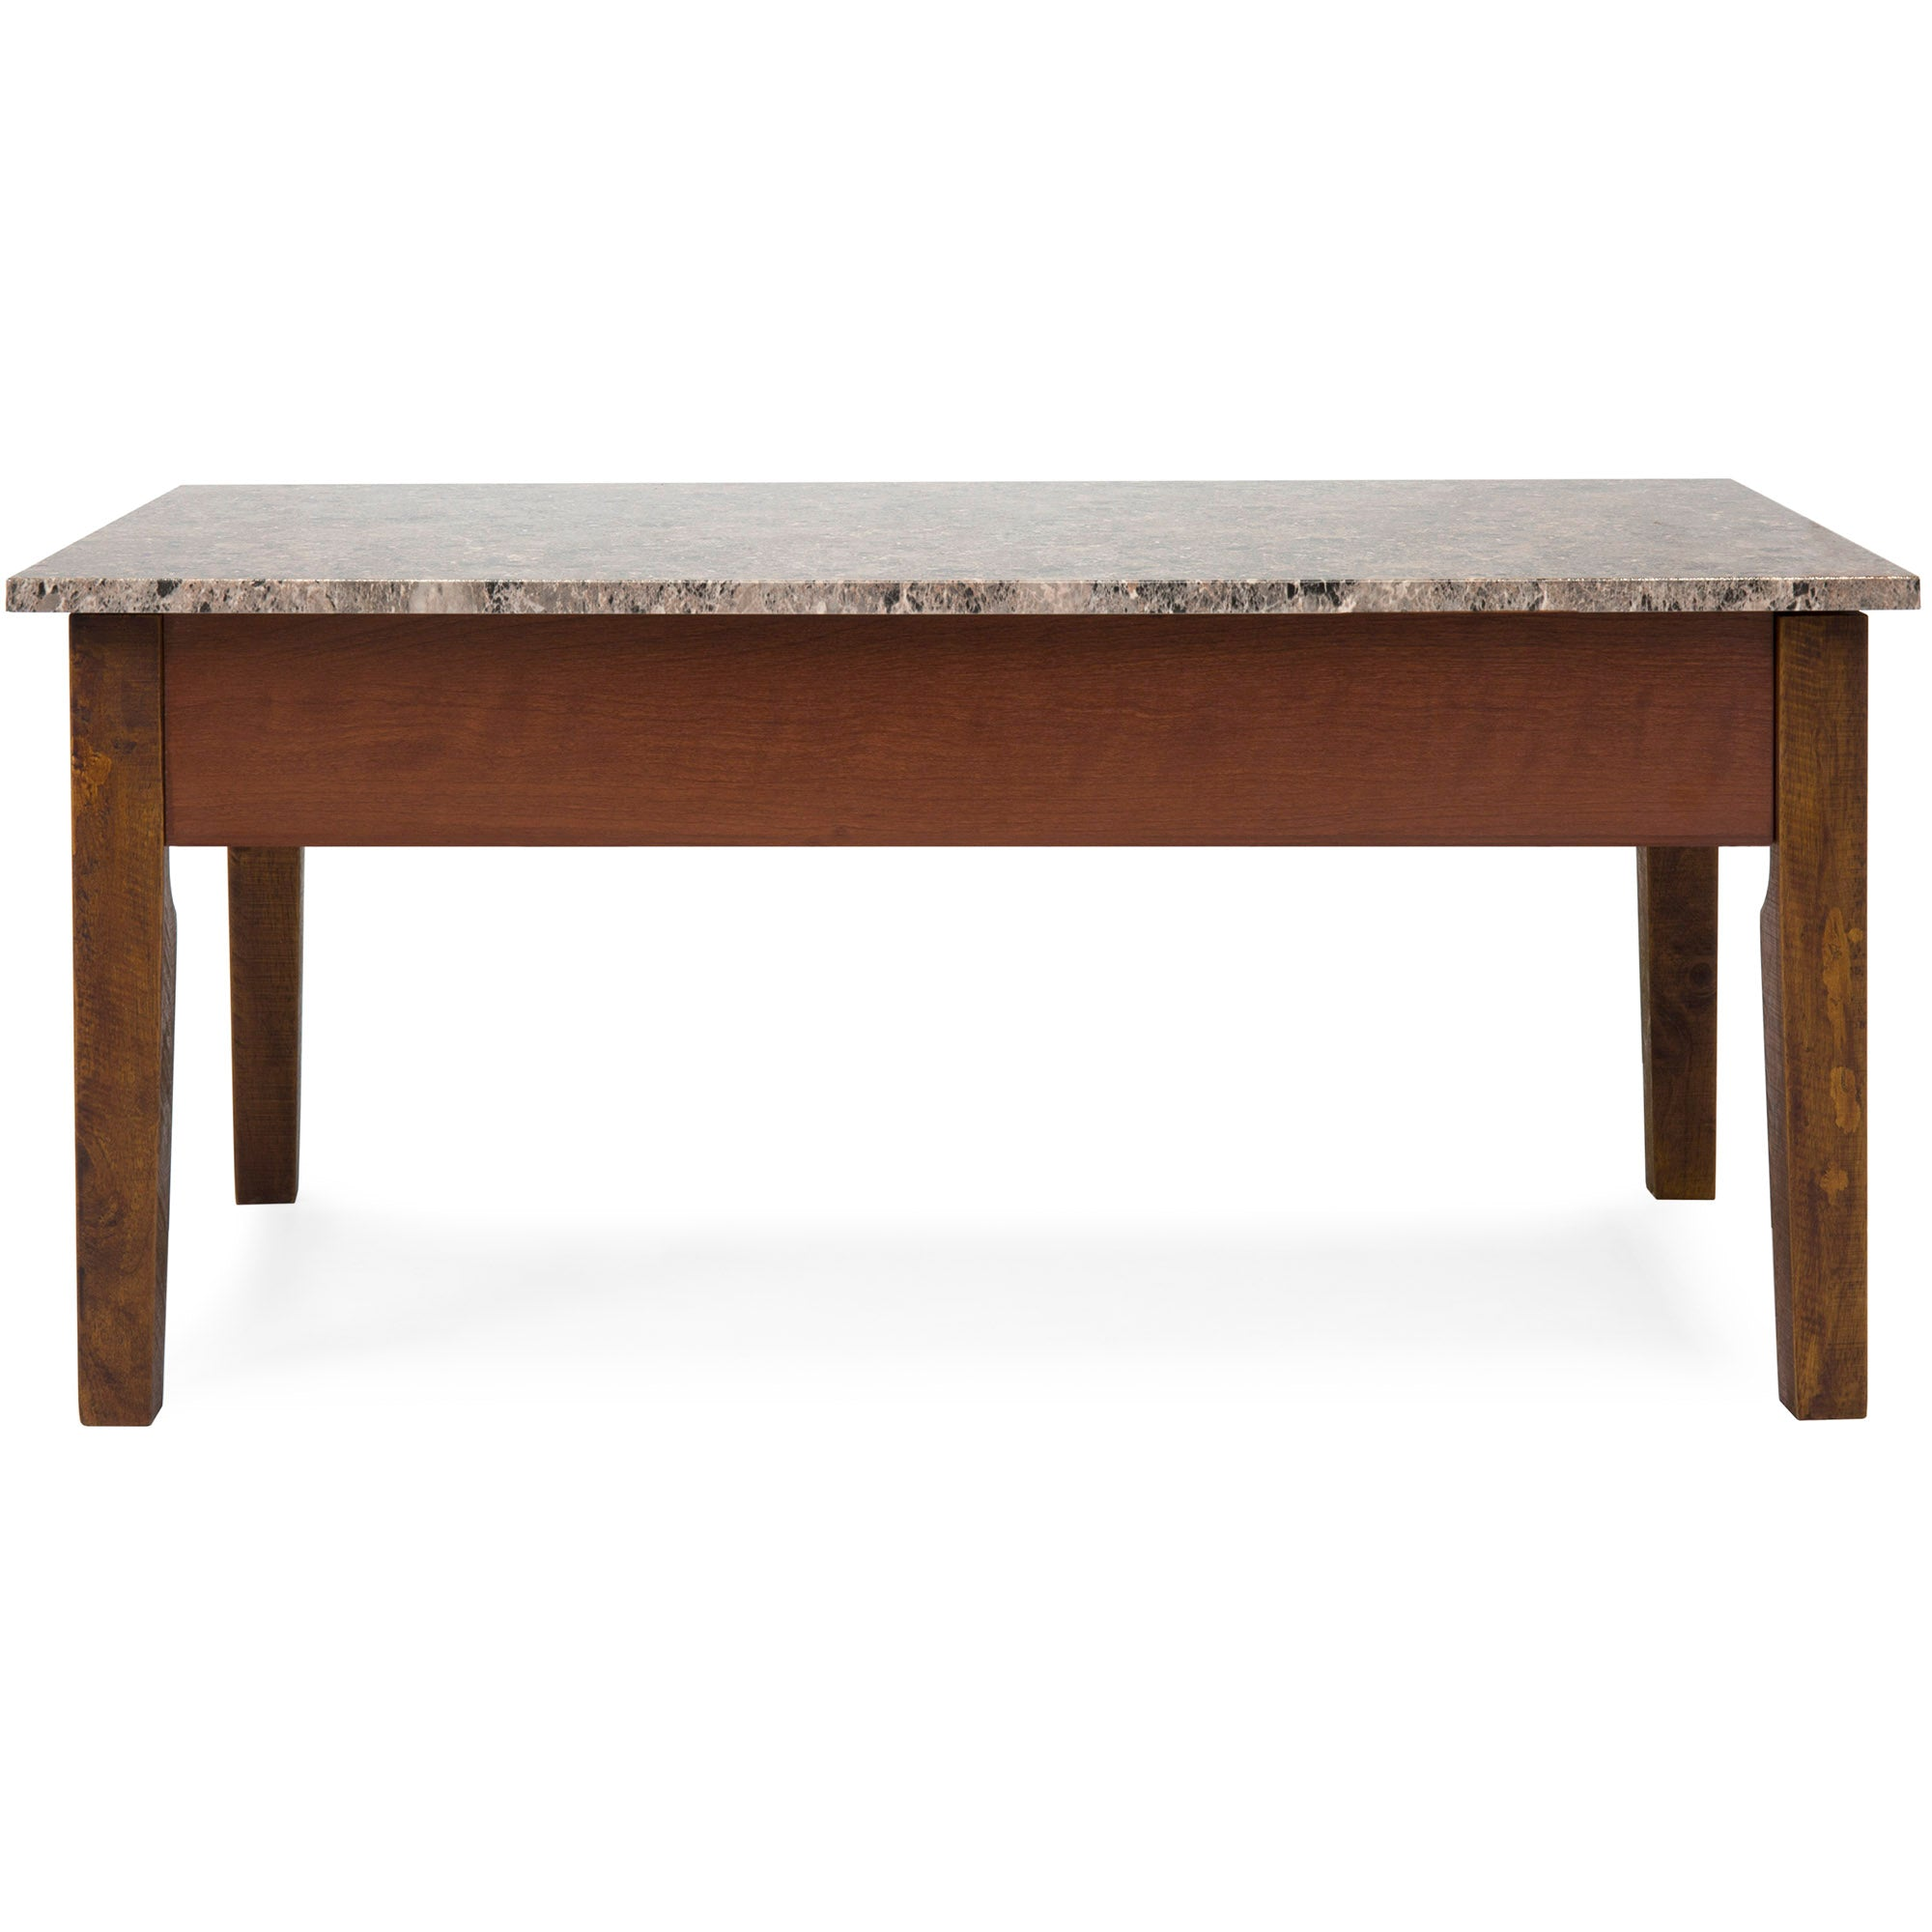 Marble Lift Top Coffee Table   Brown